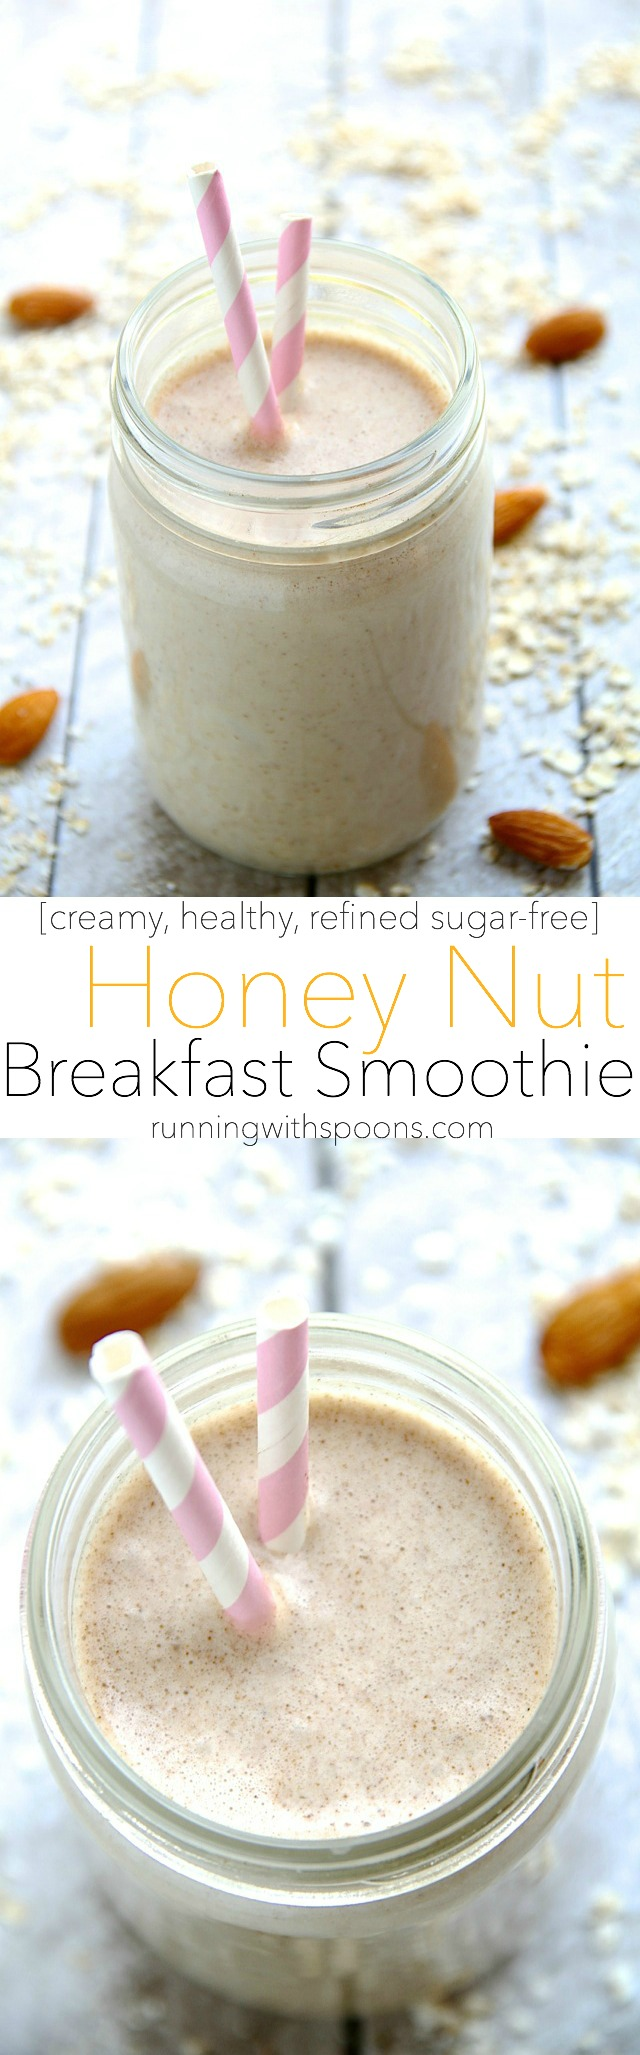 Honey Nut Breakfast Smoothie -- start your day off on the right foot with this creamy and comforting smoothie that combines the simple flavours of honey and nuts in a wholesome and satisfying breakfast! || runningwithspoons.com